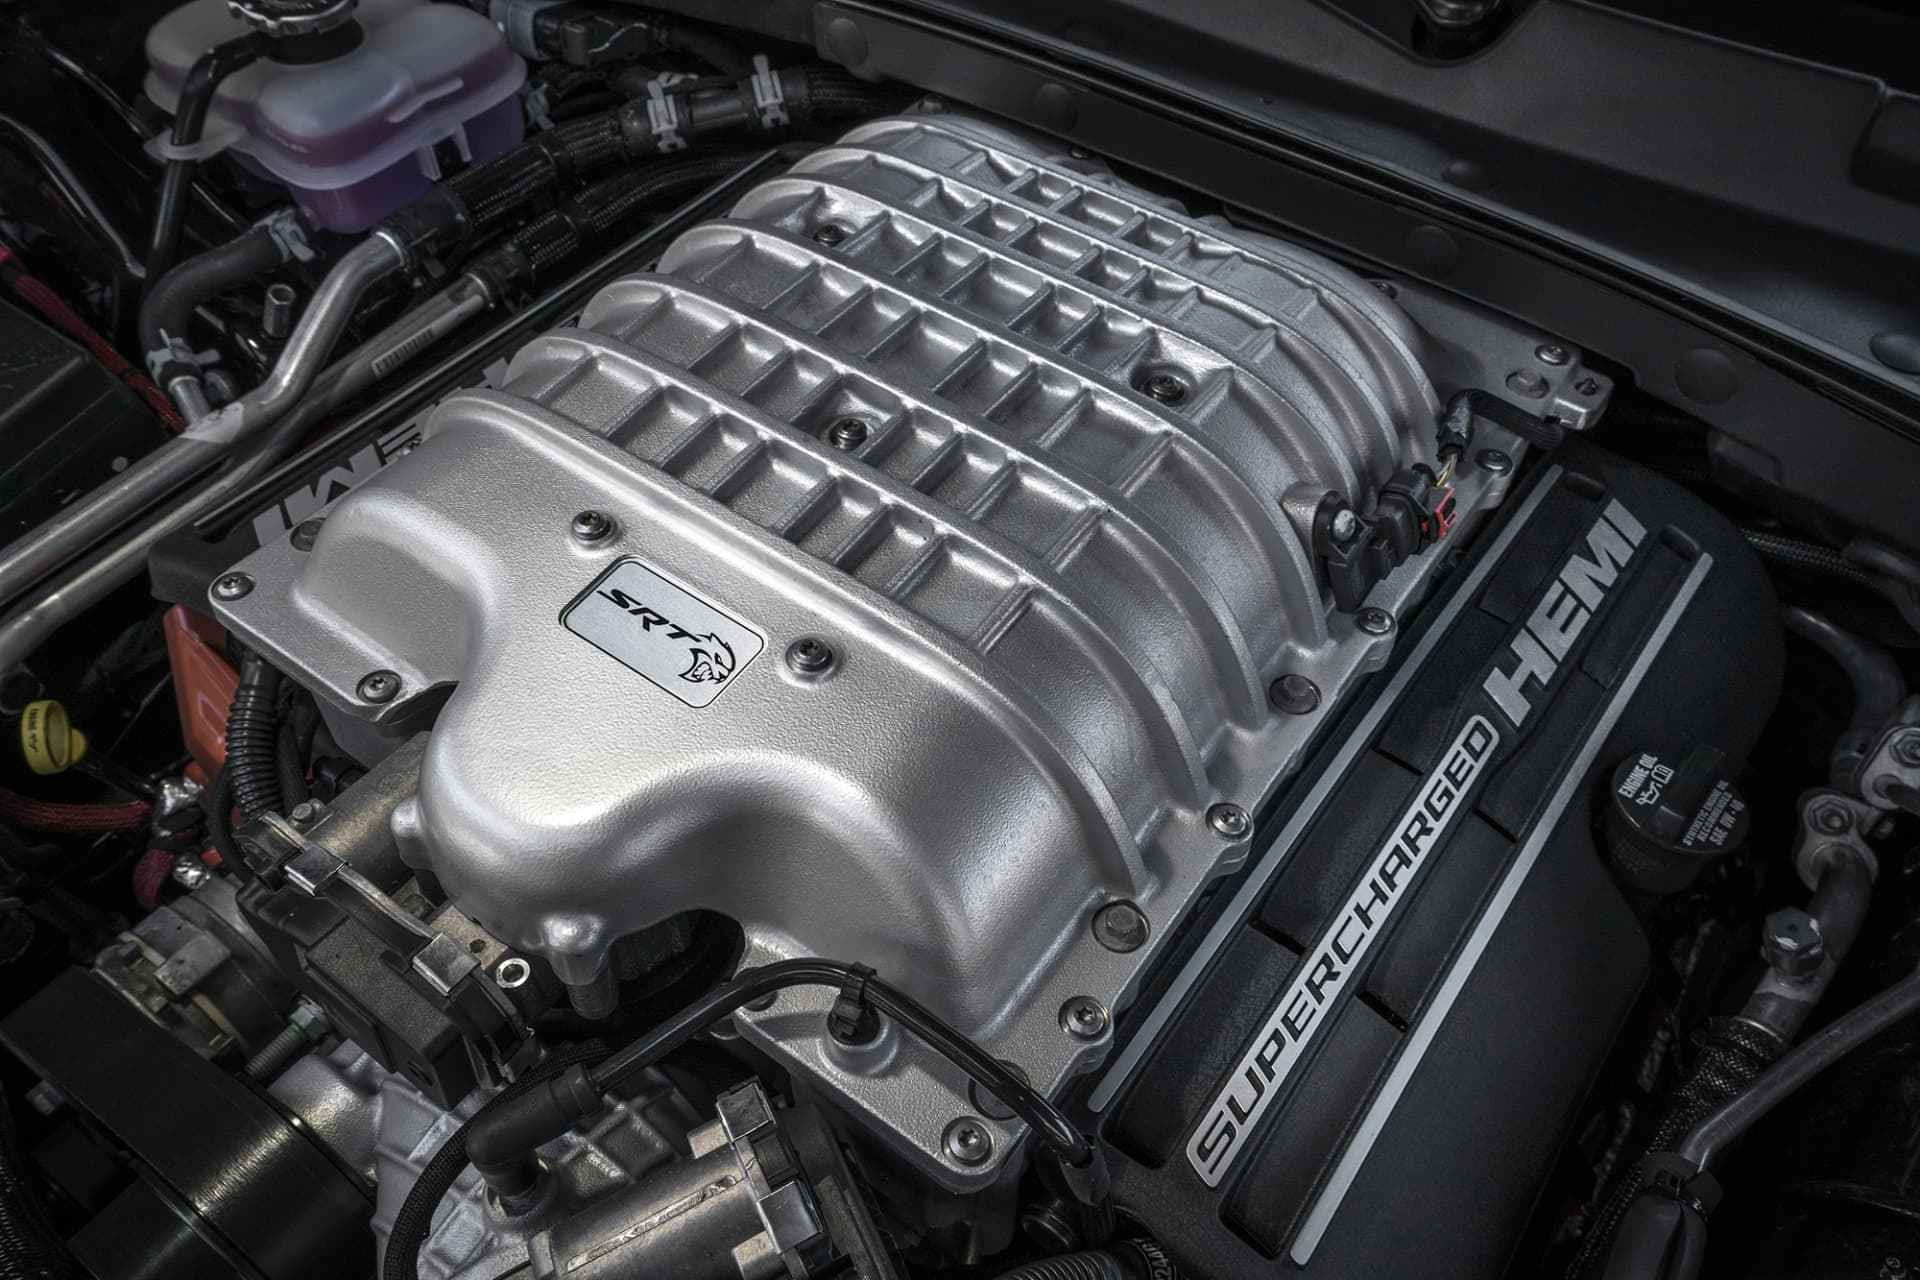 The engine, a compressor-fed V8 of 6.2 liters, is nothing less than a masterpiece. With 717 horses and 881 Nm, one could almost think that this is enough power to move a mountain. However, fuel consumption is in line with the drinking of an alcoholic.